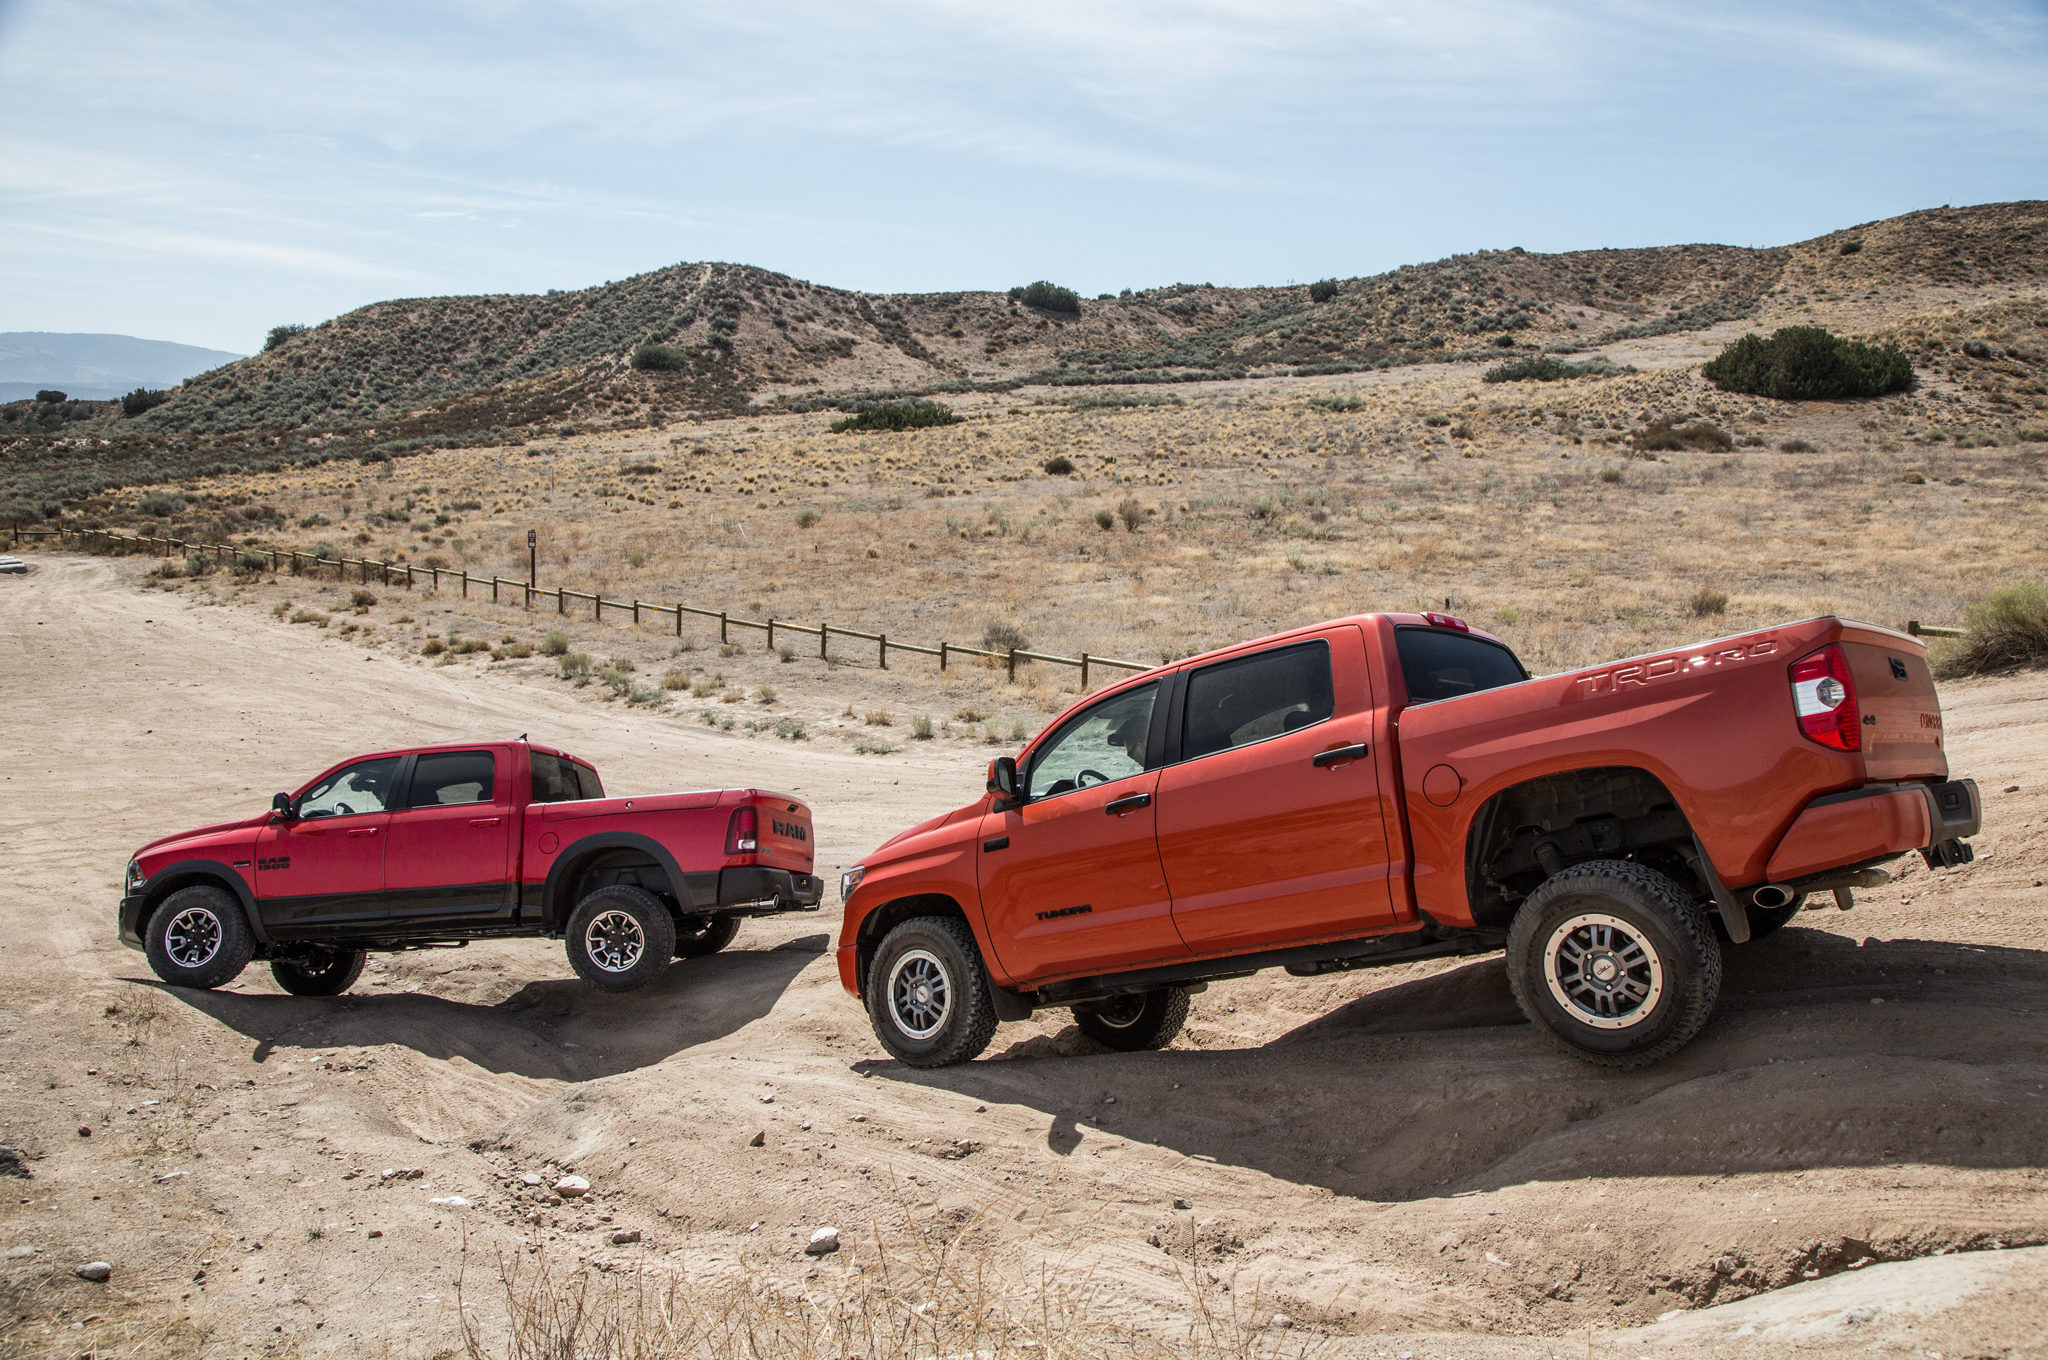 Wonderful 2015 Ram 1500 Rebel 4x4 Hemi Vs 2015 Toyota Tundra TRD